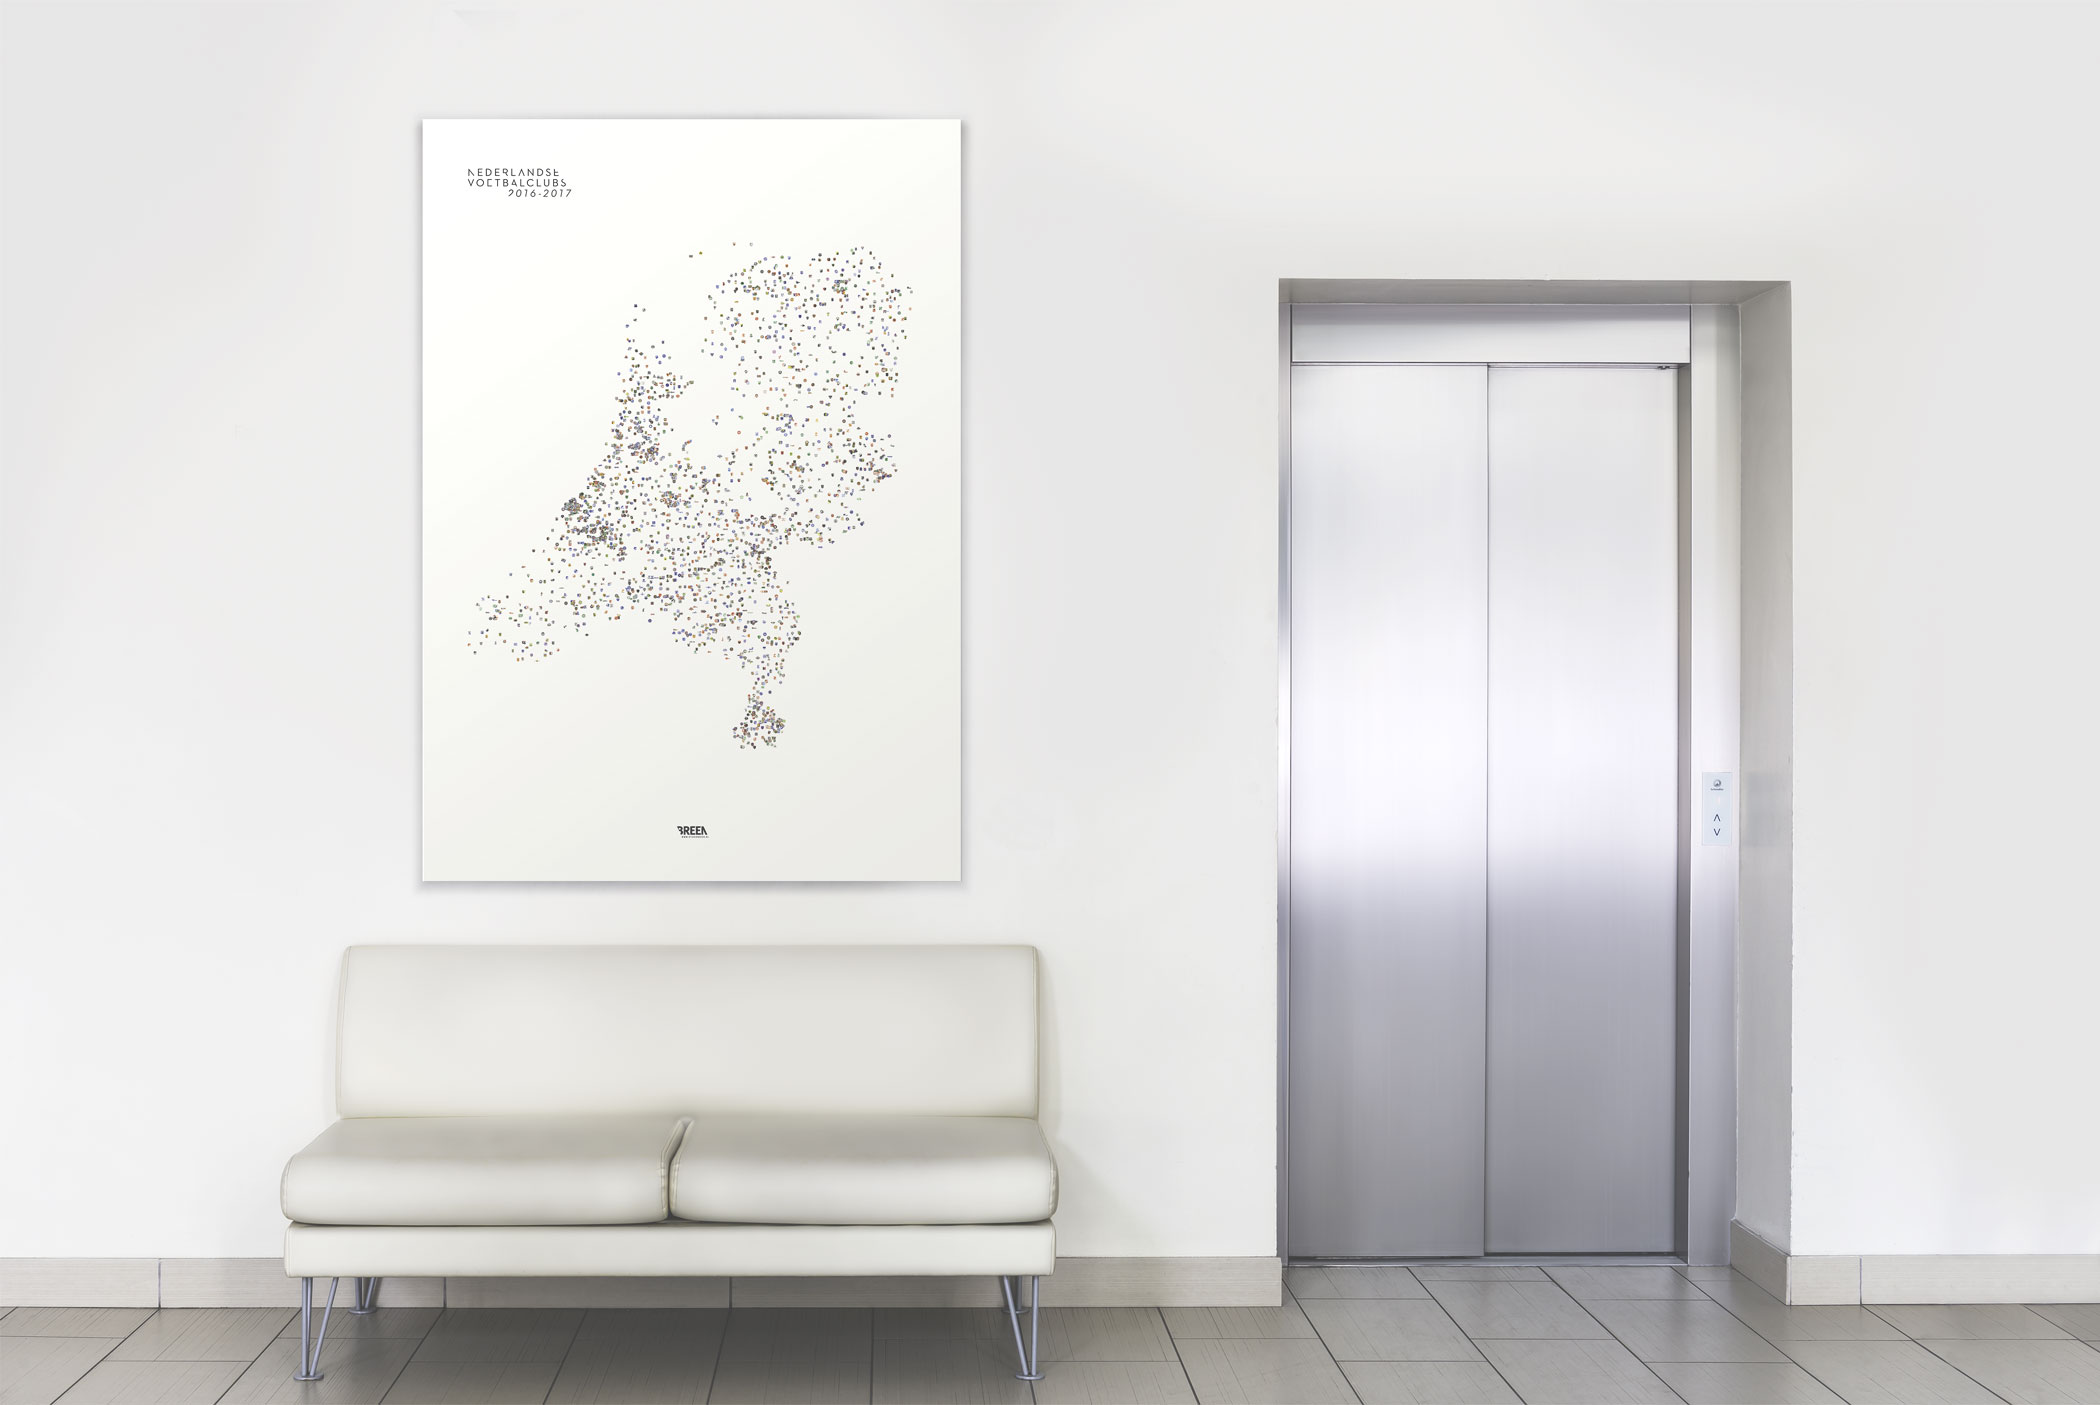 poster mockup Dutch football clubs next to elevator above a couch